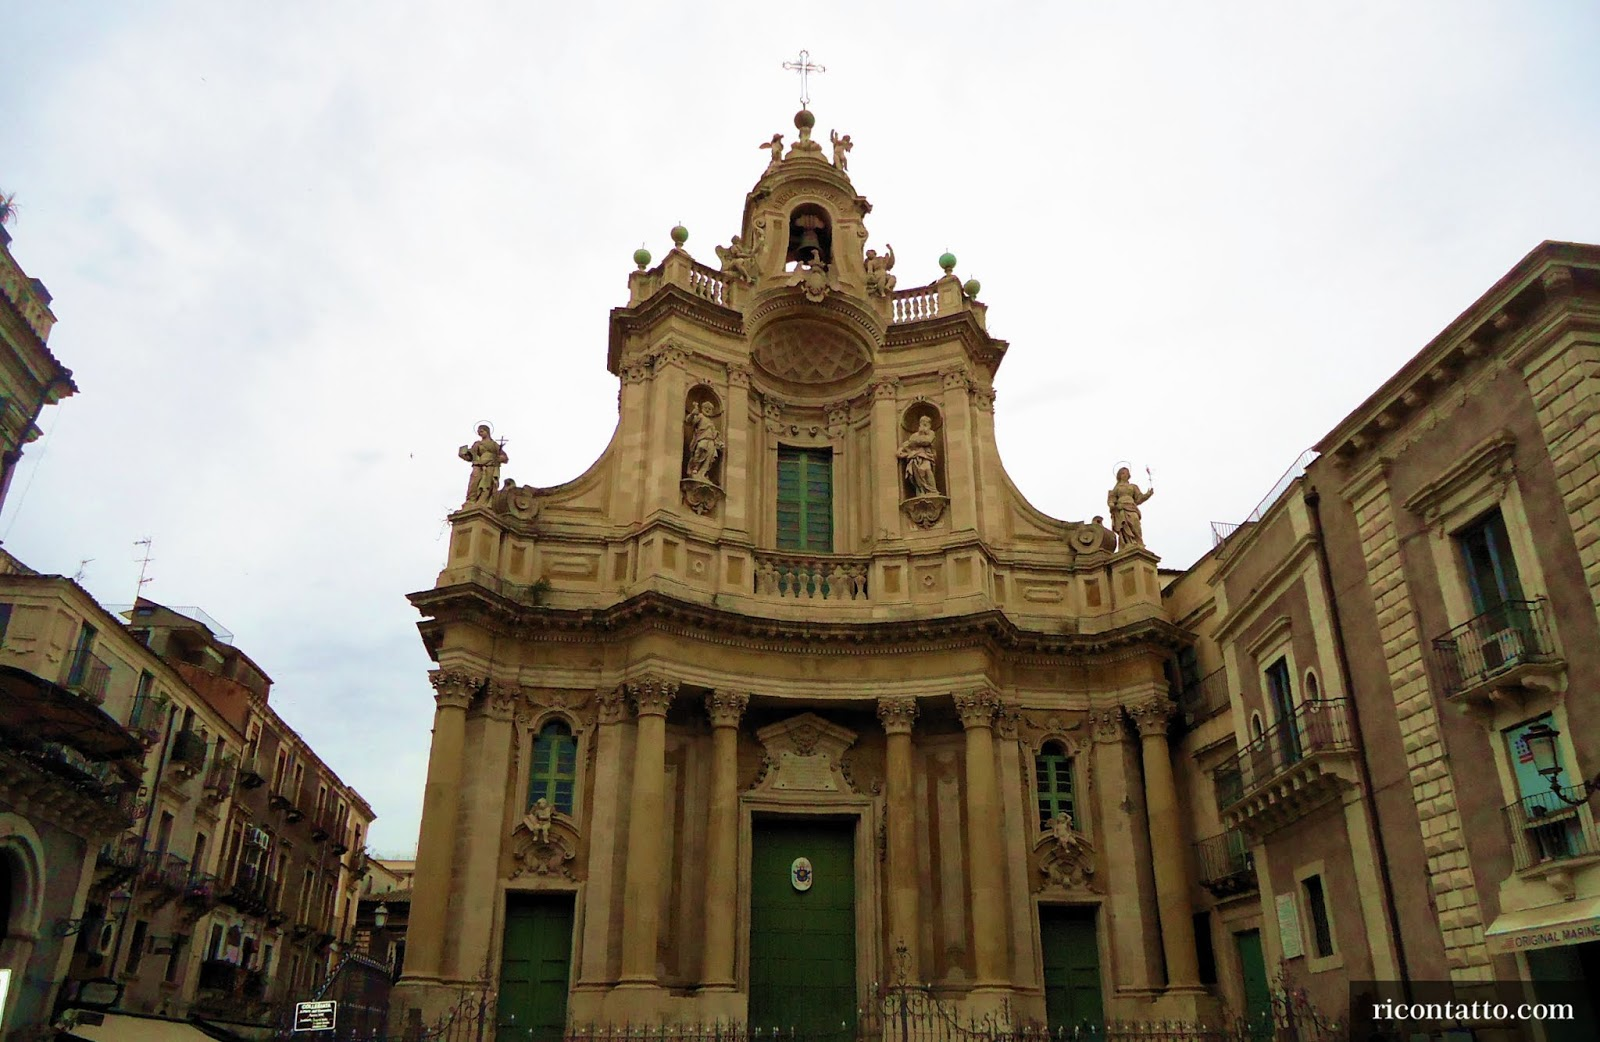 Catania, Sicilia, Italy - Photo #04 by Ricontatto.com